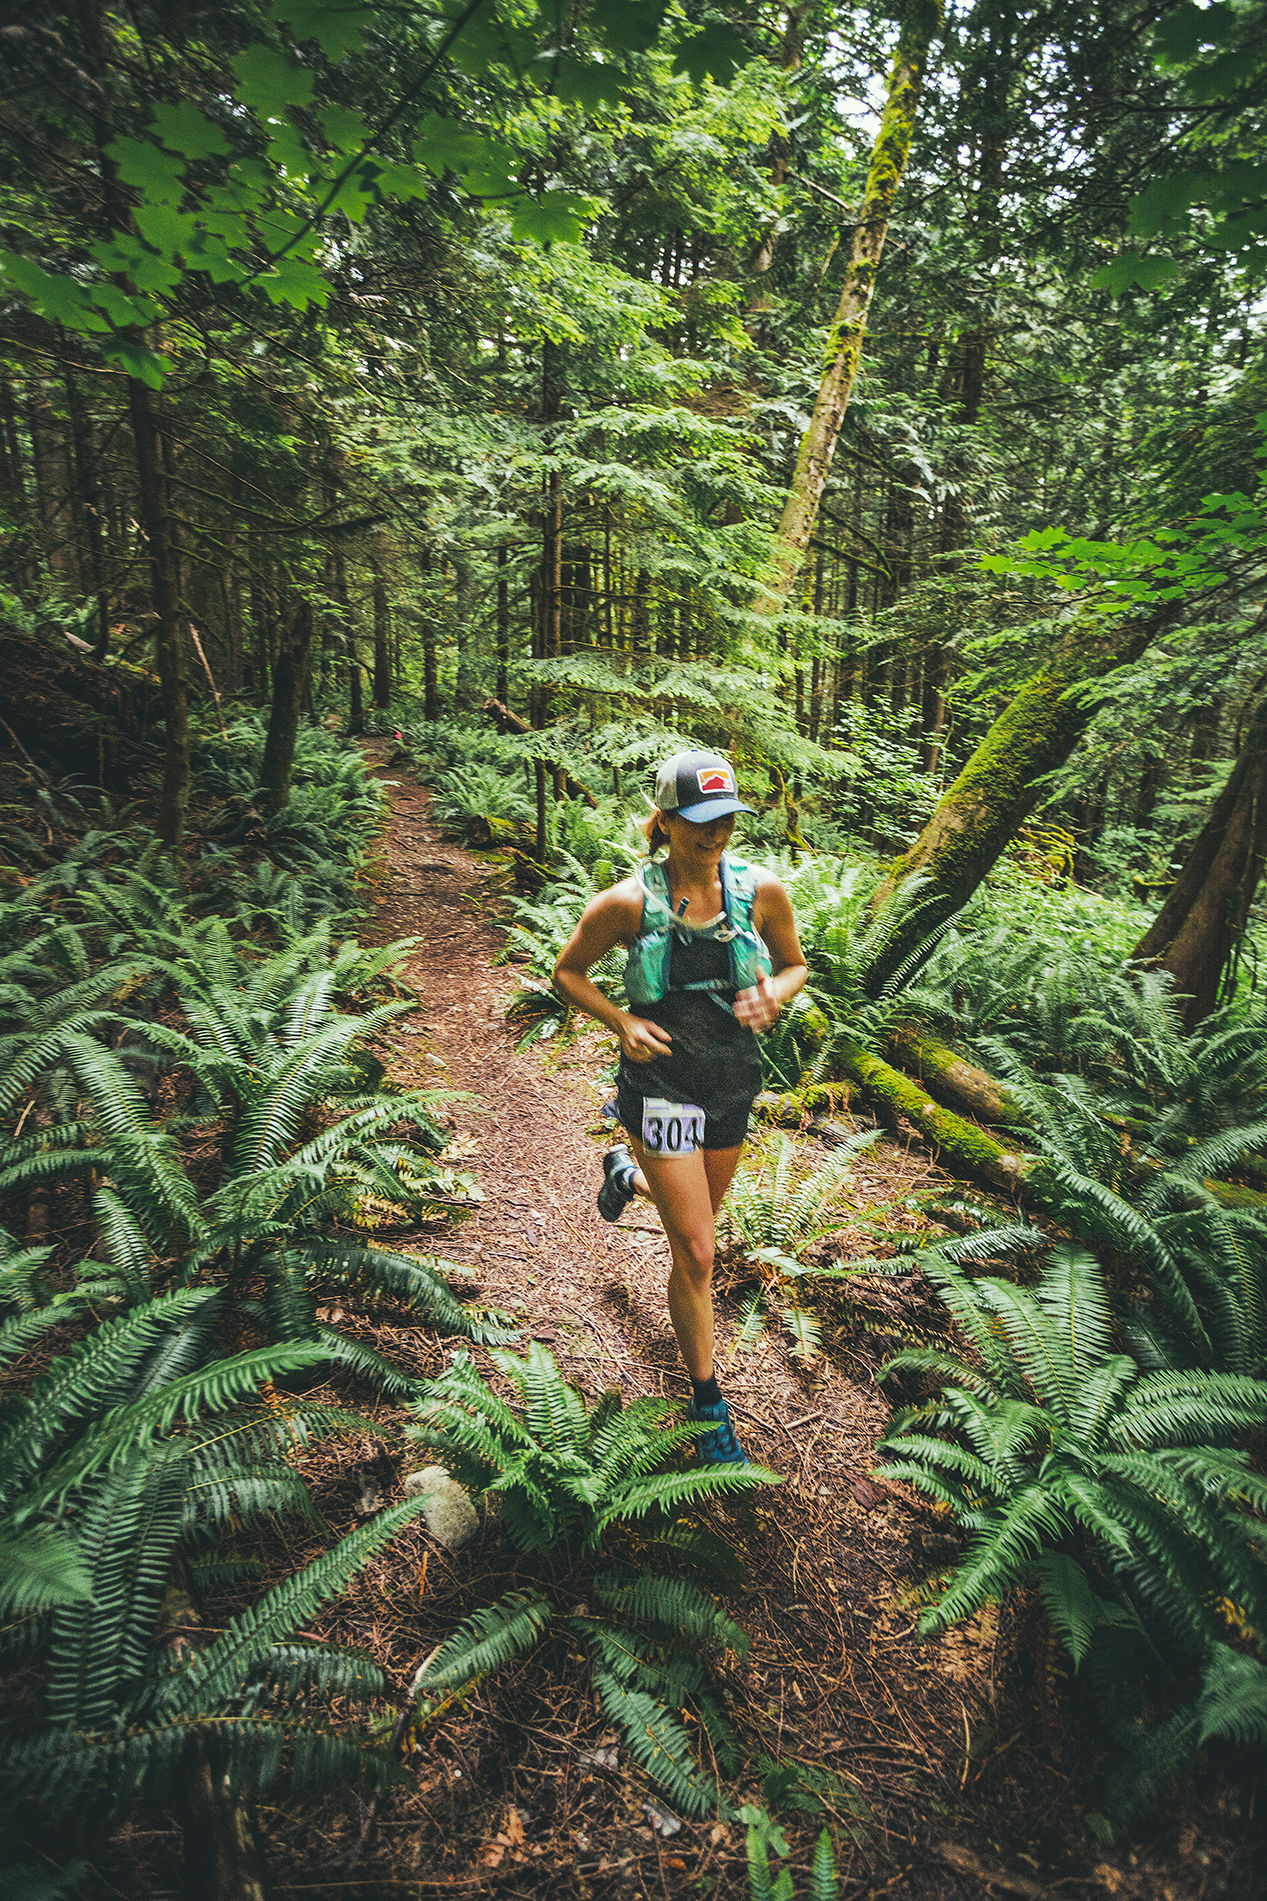 Fraser Valley Trail Races - Bear Mountain - IMG_2995 by Brice Ferre Studio - Vancouver Portrait Adventure and Athlete Photographer.jpg